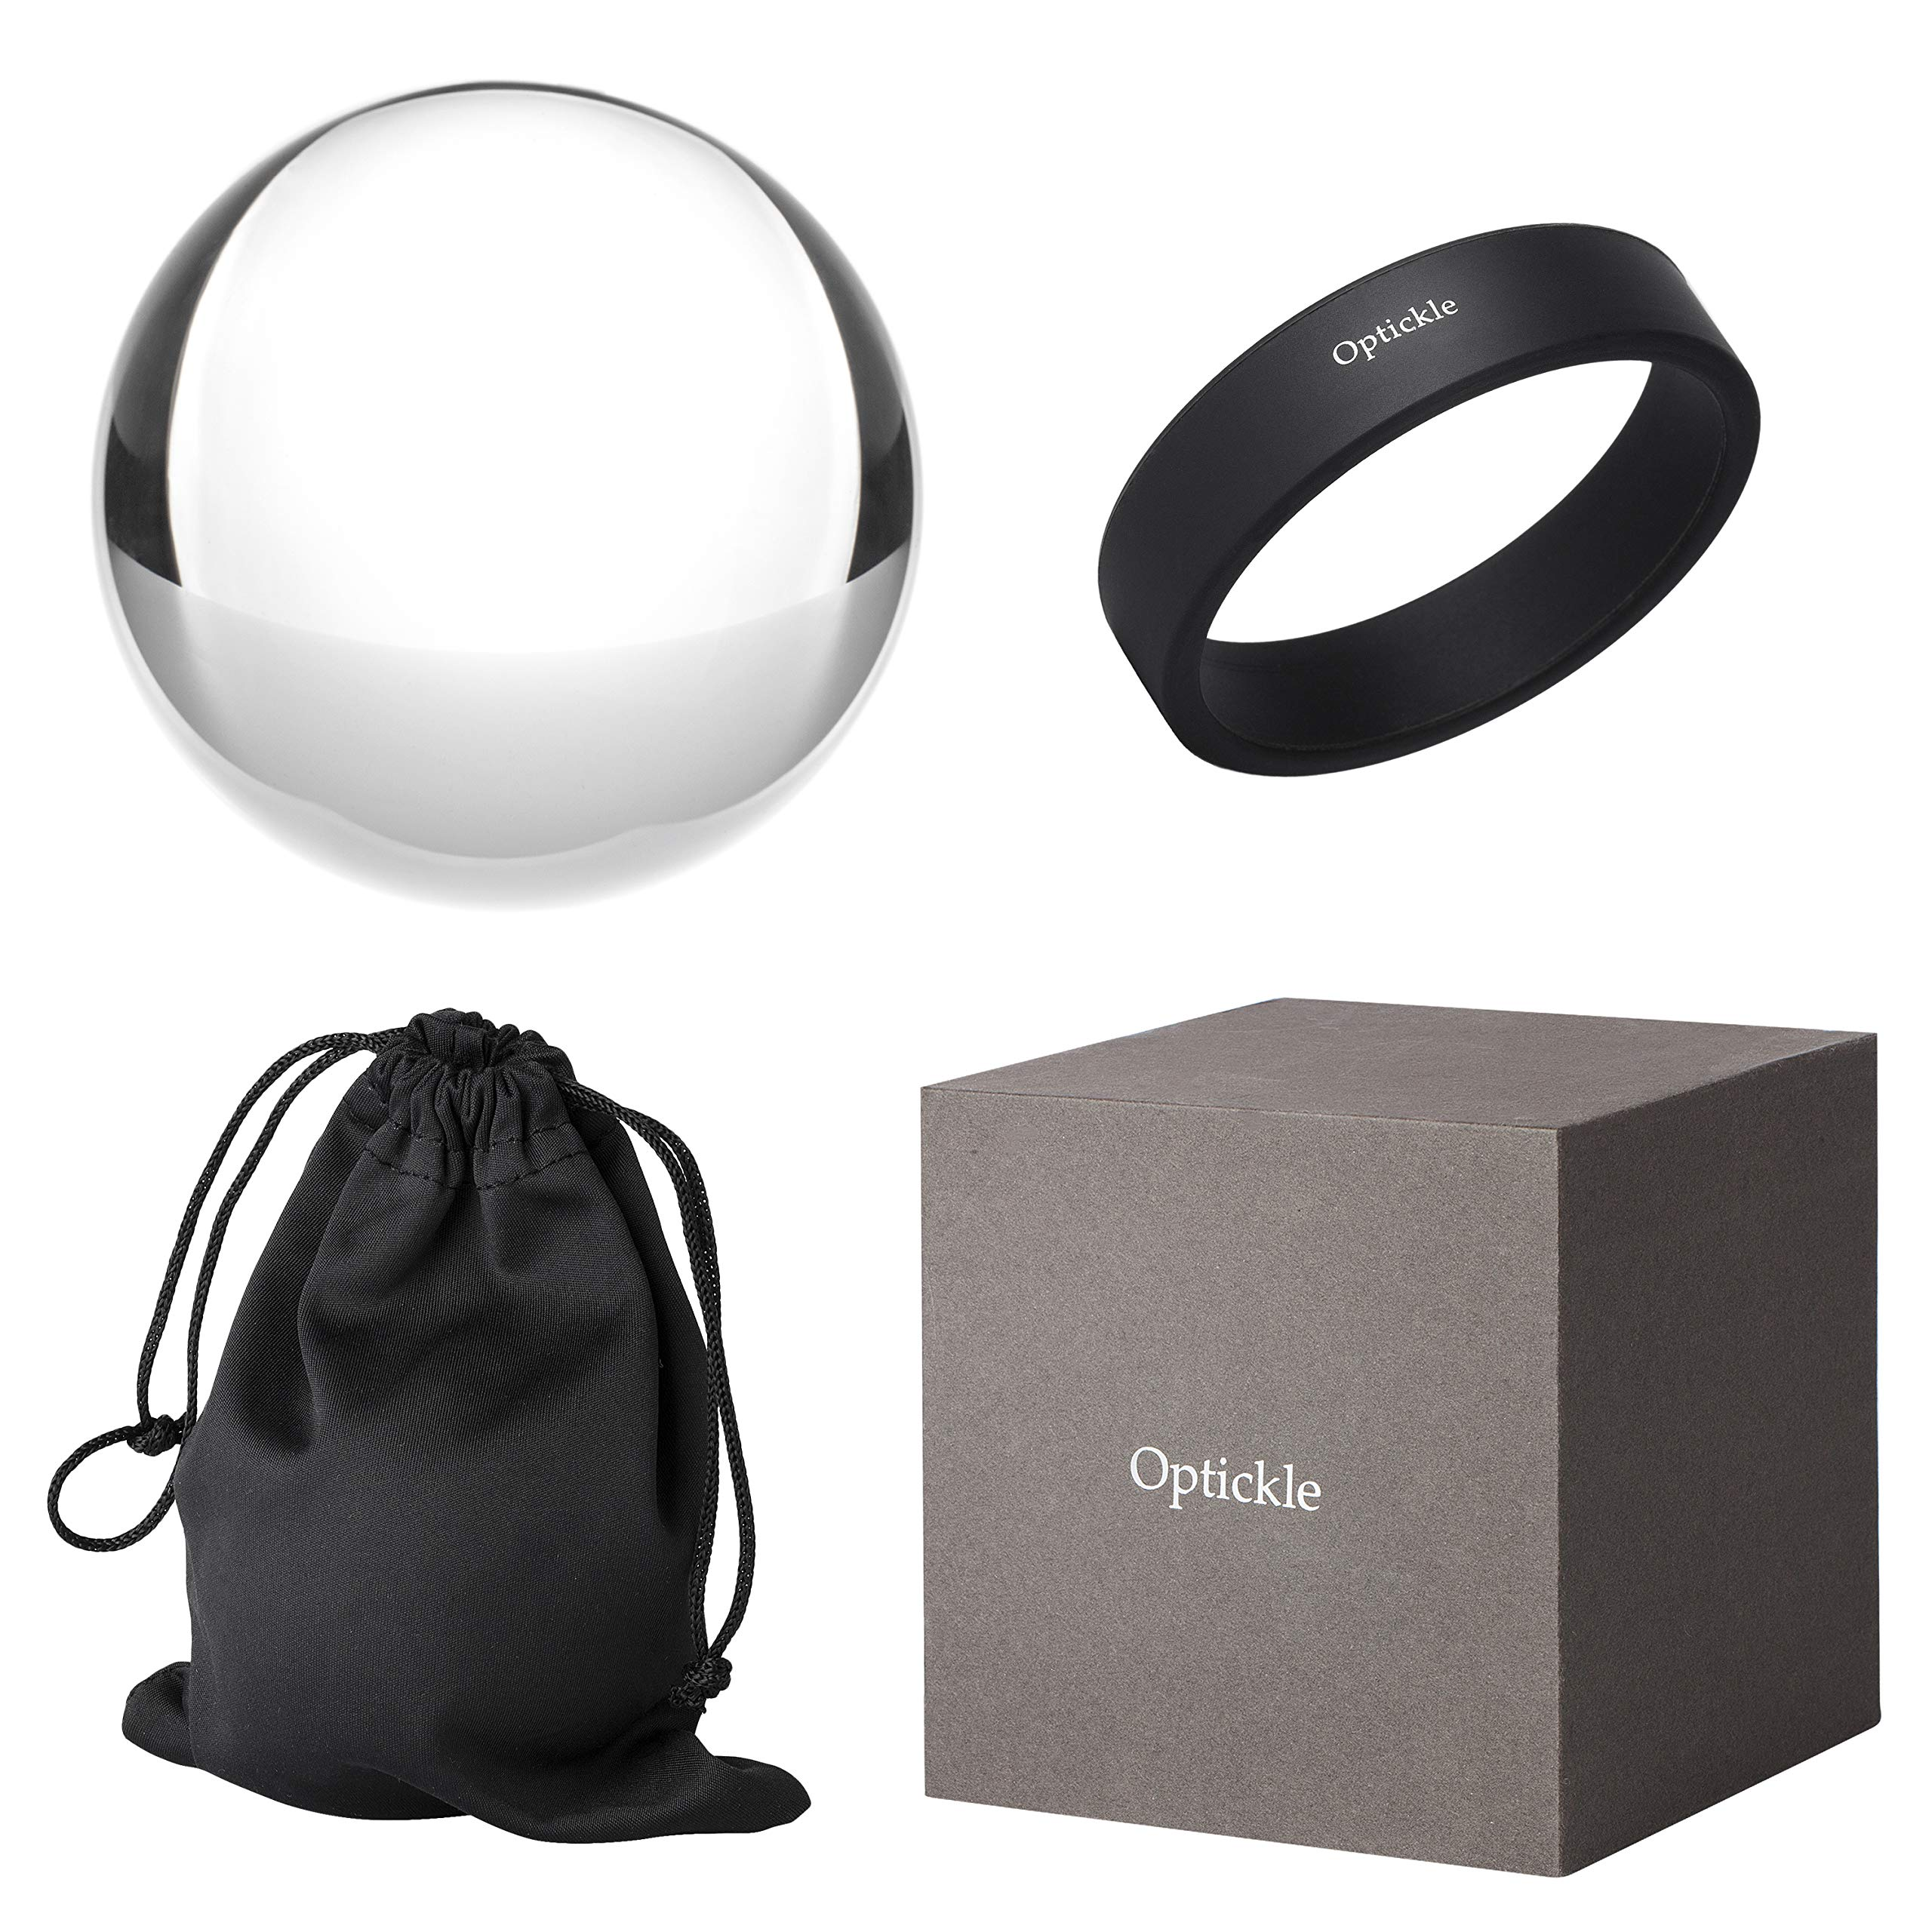 Optickle - Crystal Glass Ball for Photography (78mm) Optical Glass - K9 Crystal - Great Gift Idea for Creatives - Capture Brilliant 180-Degree Photos - No-Scratch Silicone Stand